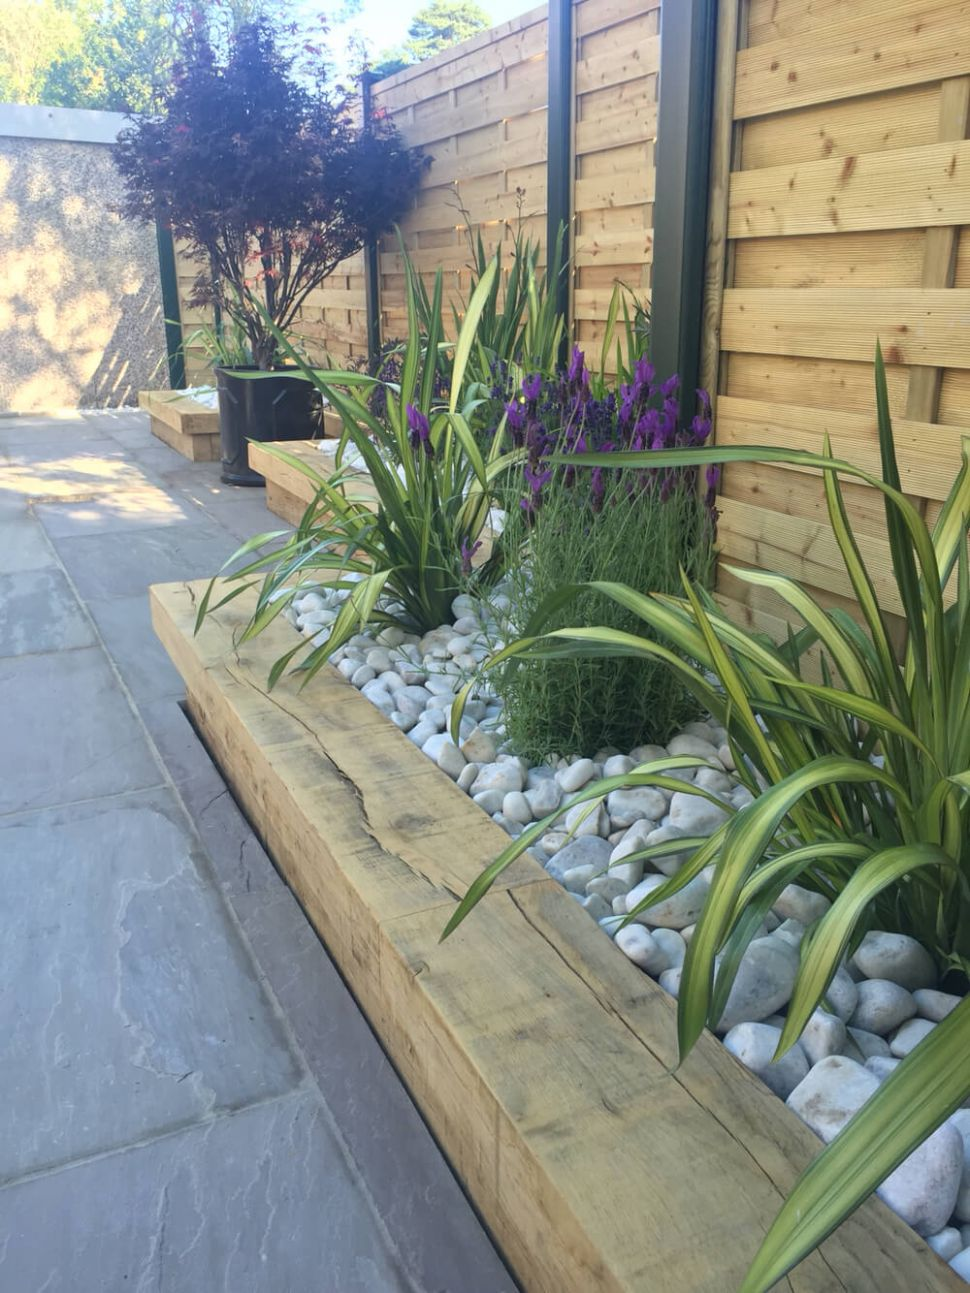 9+ Best Lawn-Edging Ideas and Designs for 9 - backyard edging ideas